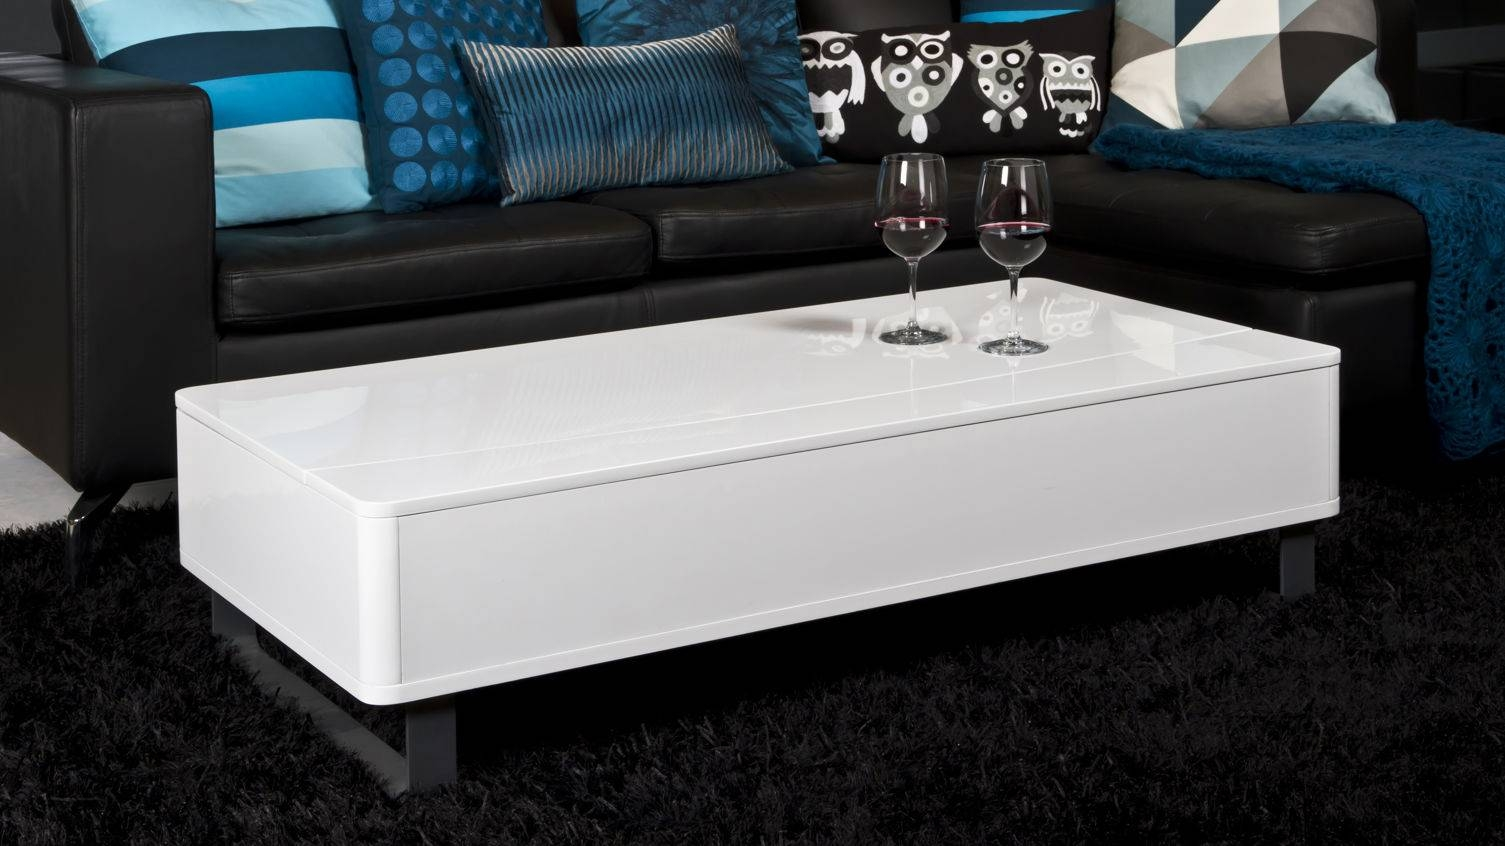 Beautiful Great White Coffee Table Design – White Coffee Tables regarding Red Gloss Coffee Tables (Image 2 of 30)